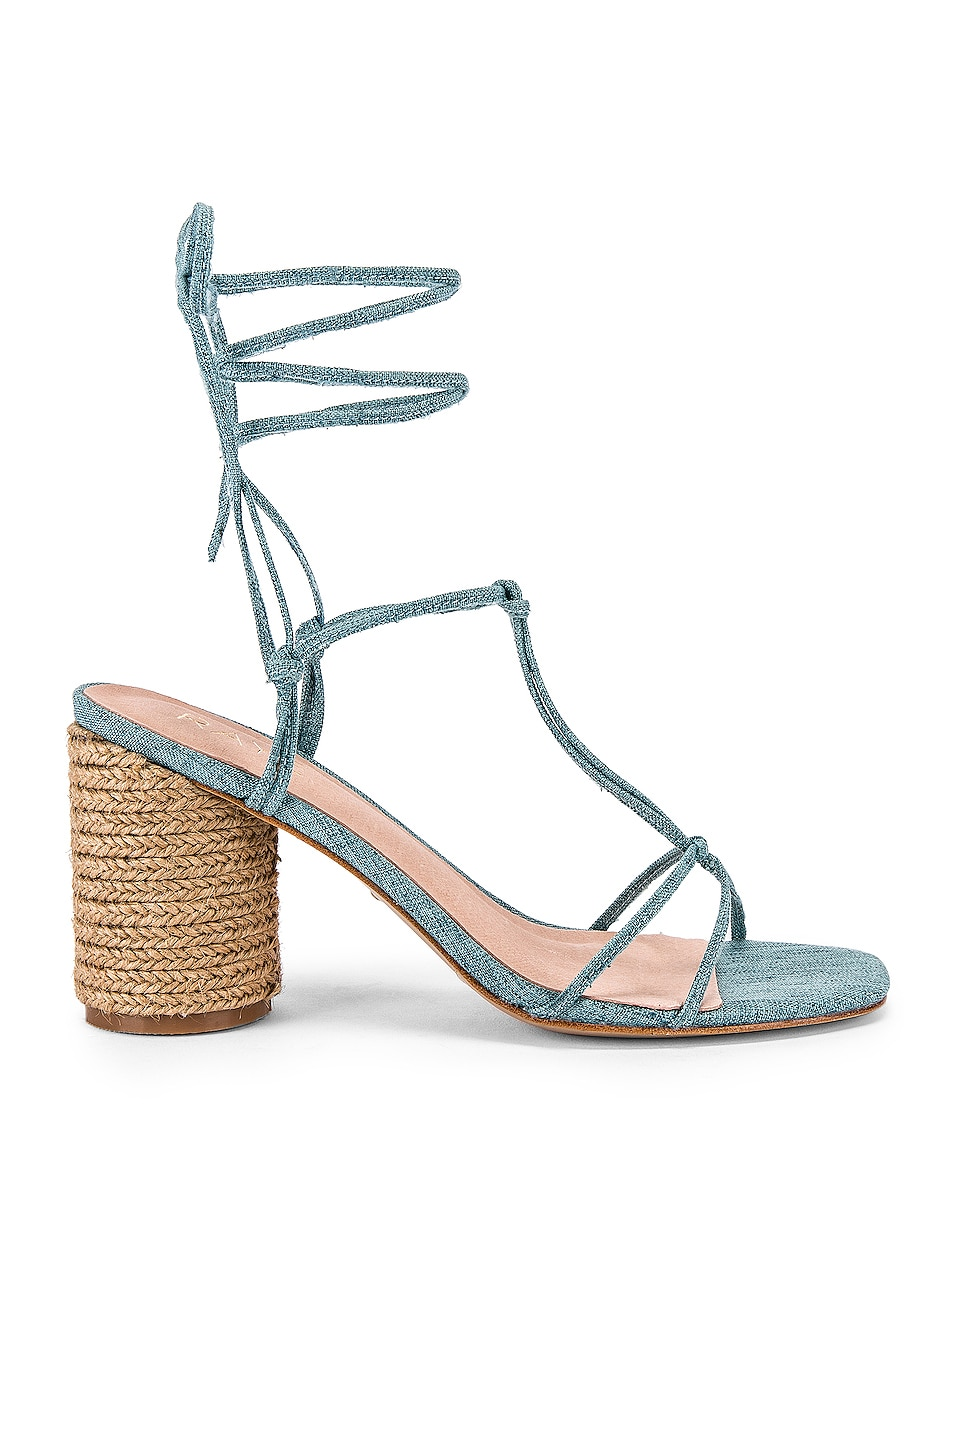 RAYE Soleil Heel in Cloud Blue